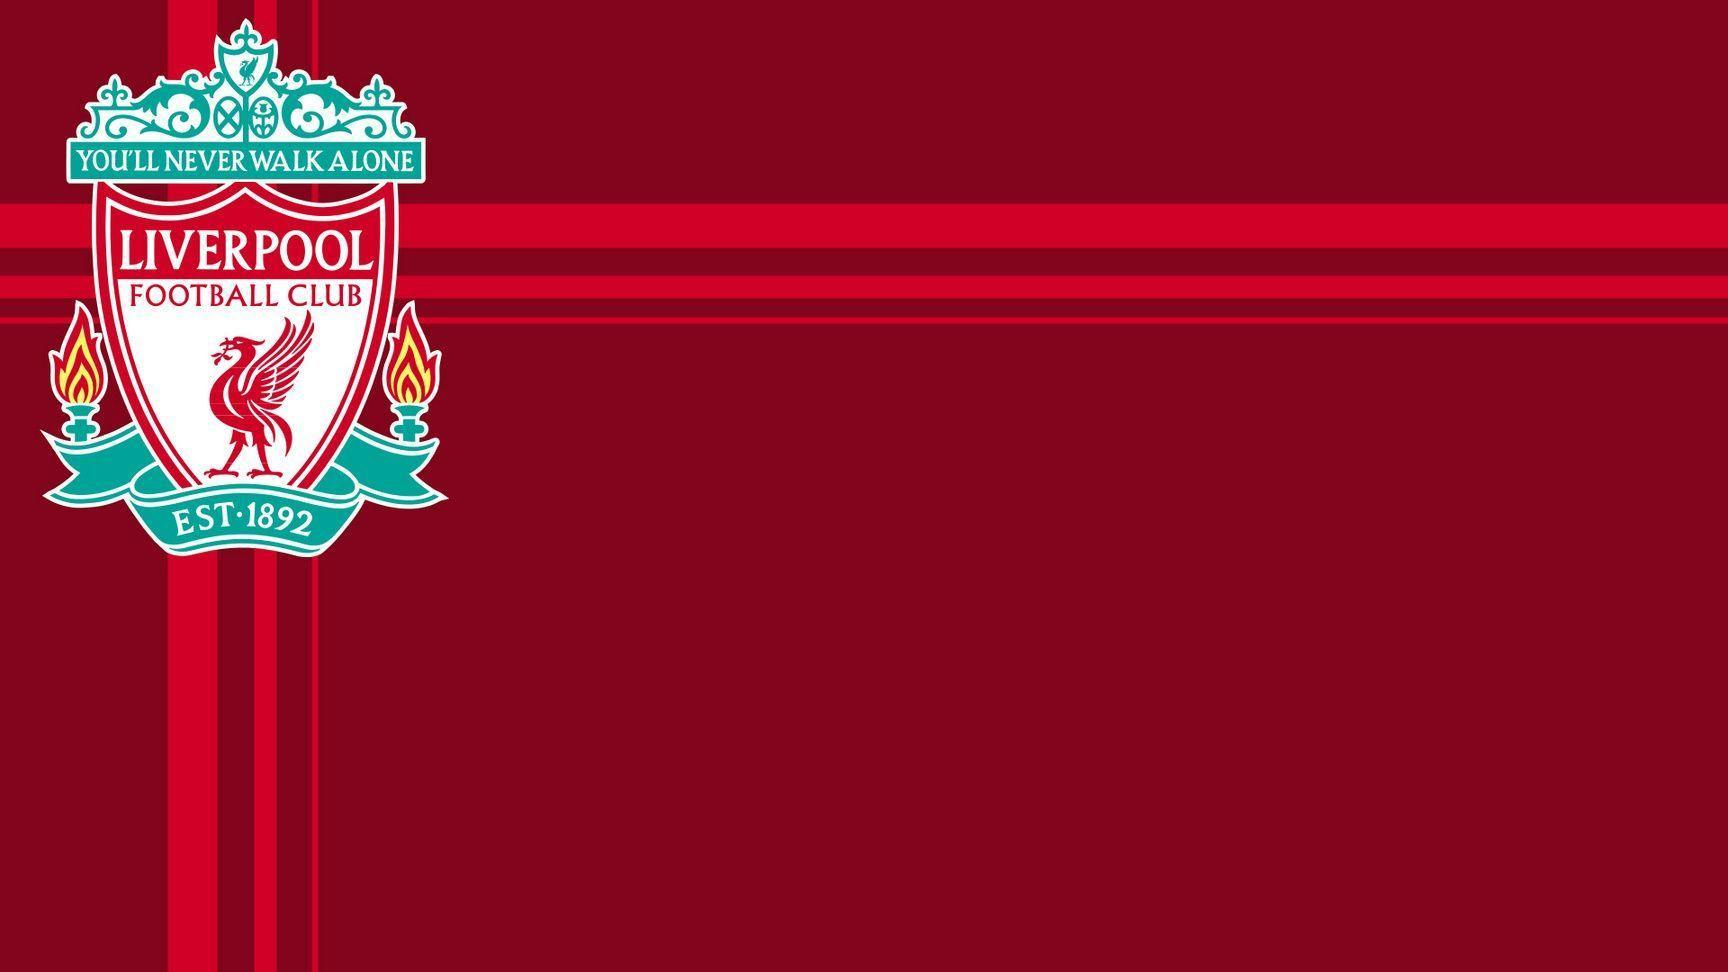 Liverpool FC Desktop Wallpaper - www.